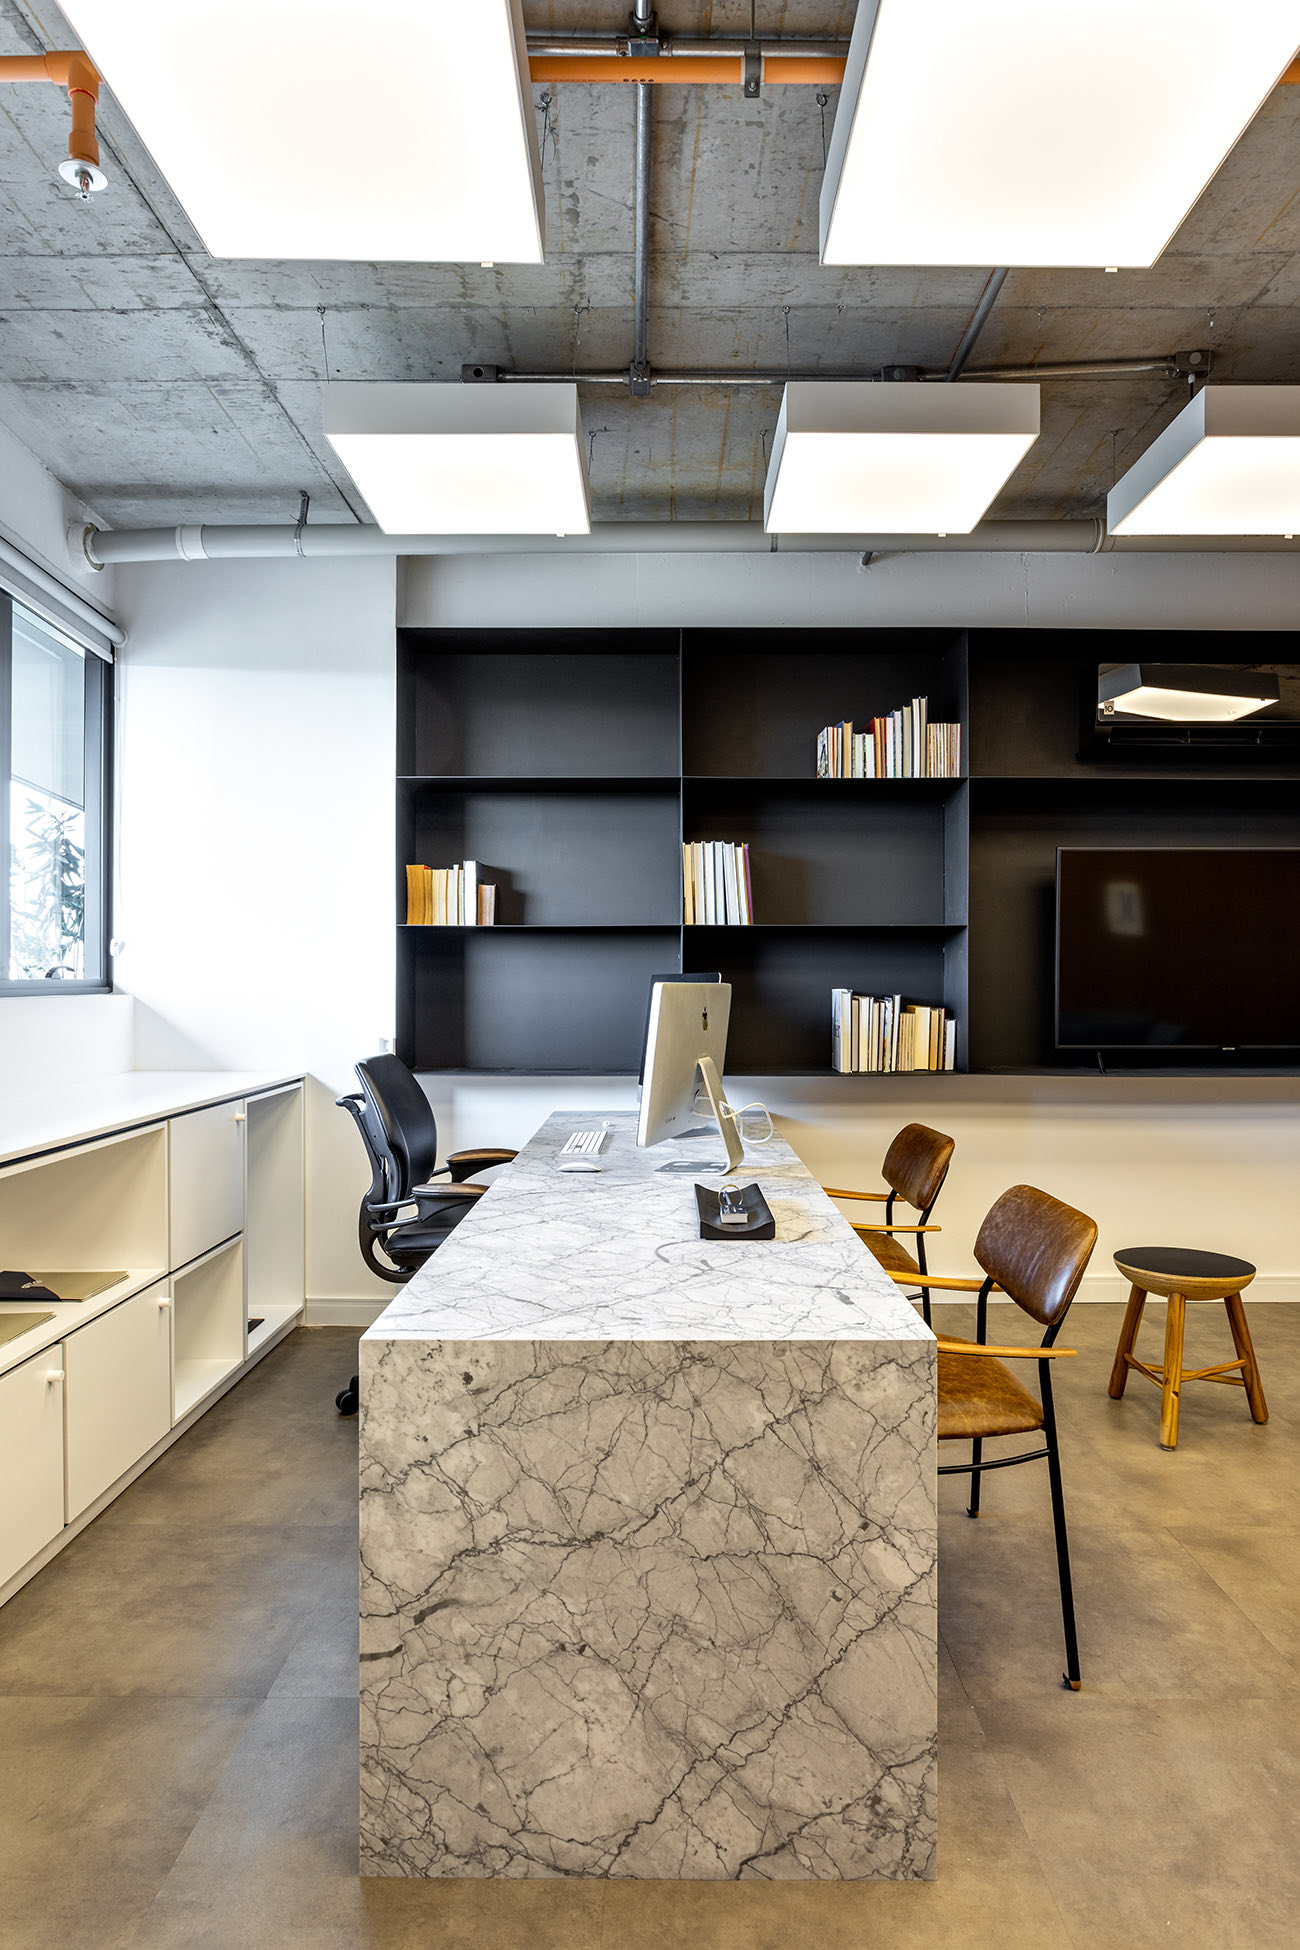 piraci-oliveira-office-8